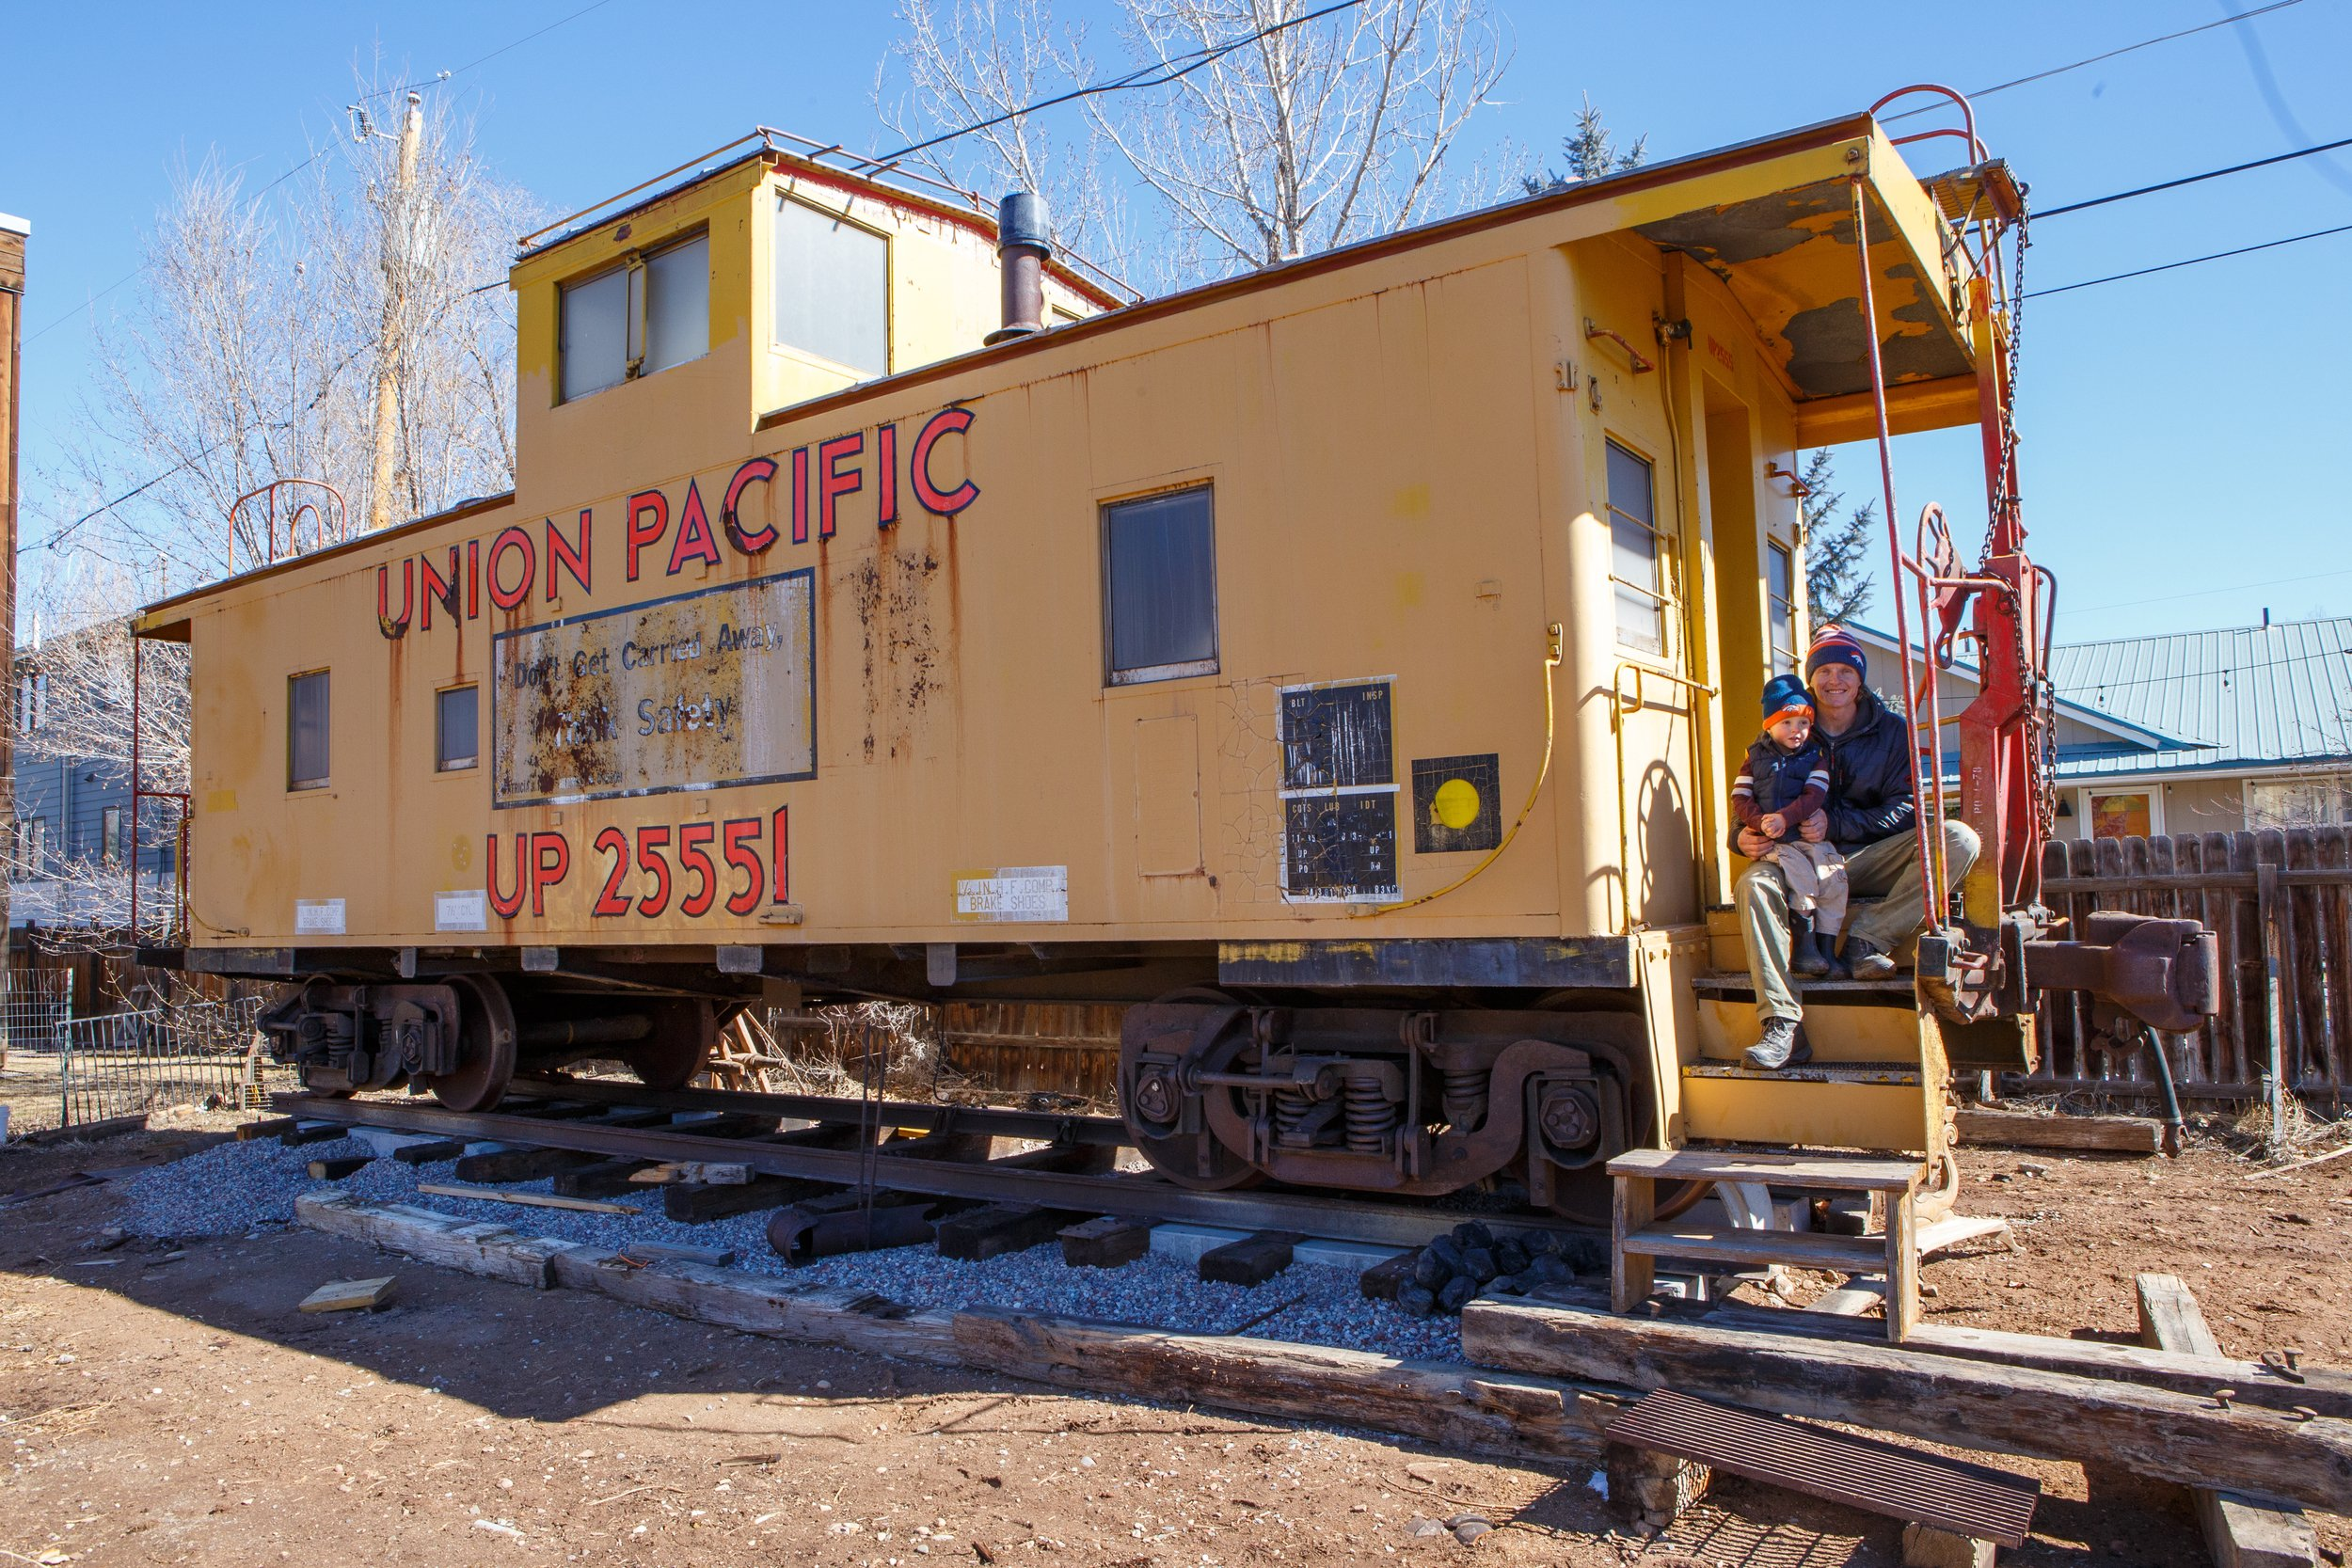 A caboose comes to Carbondale thumbnail